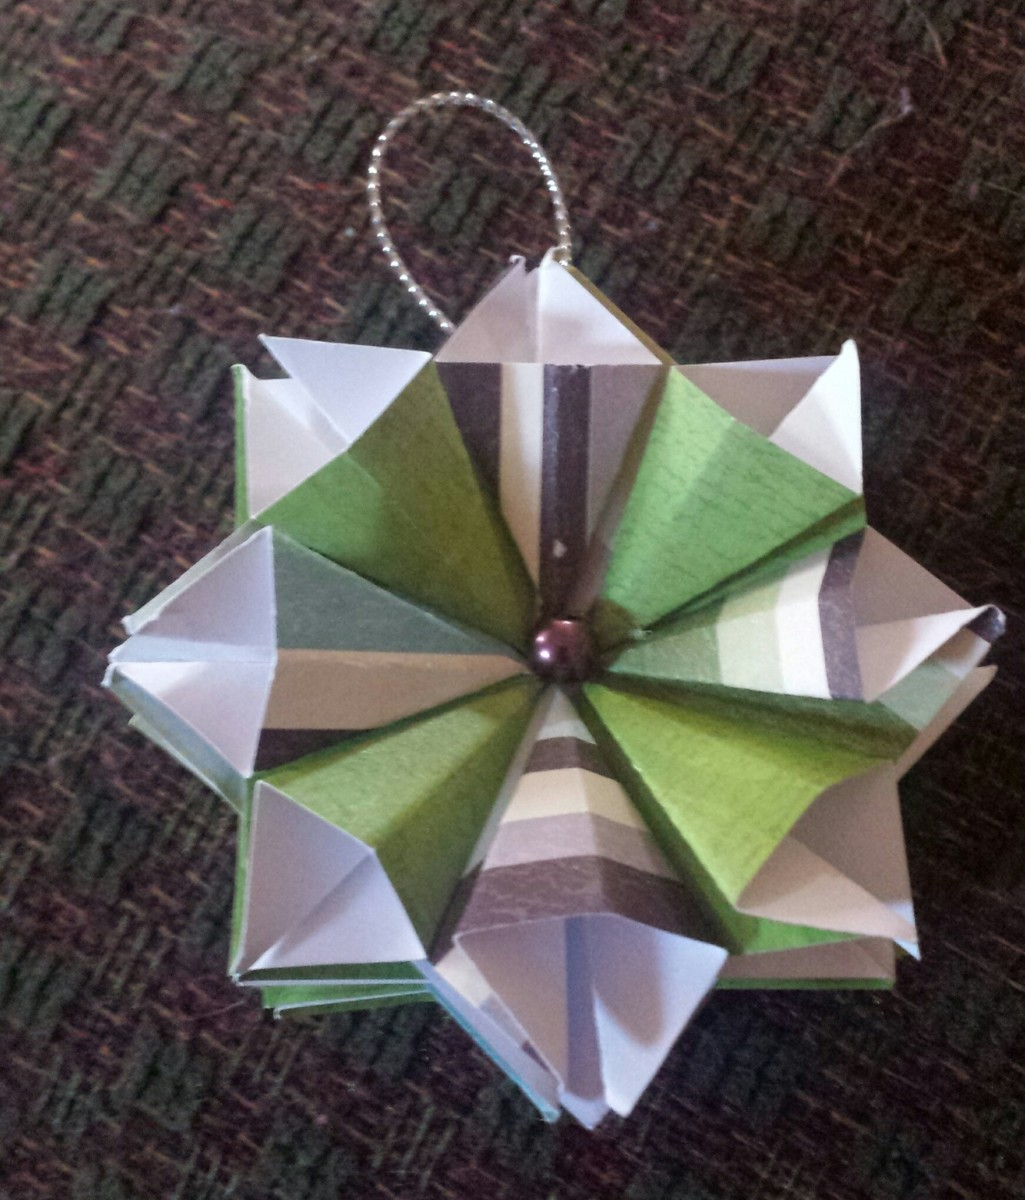 This paper folding ornament is easy to make